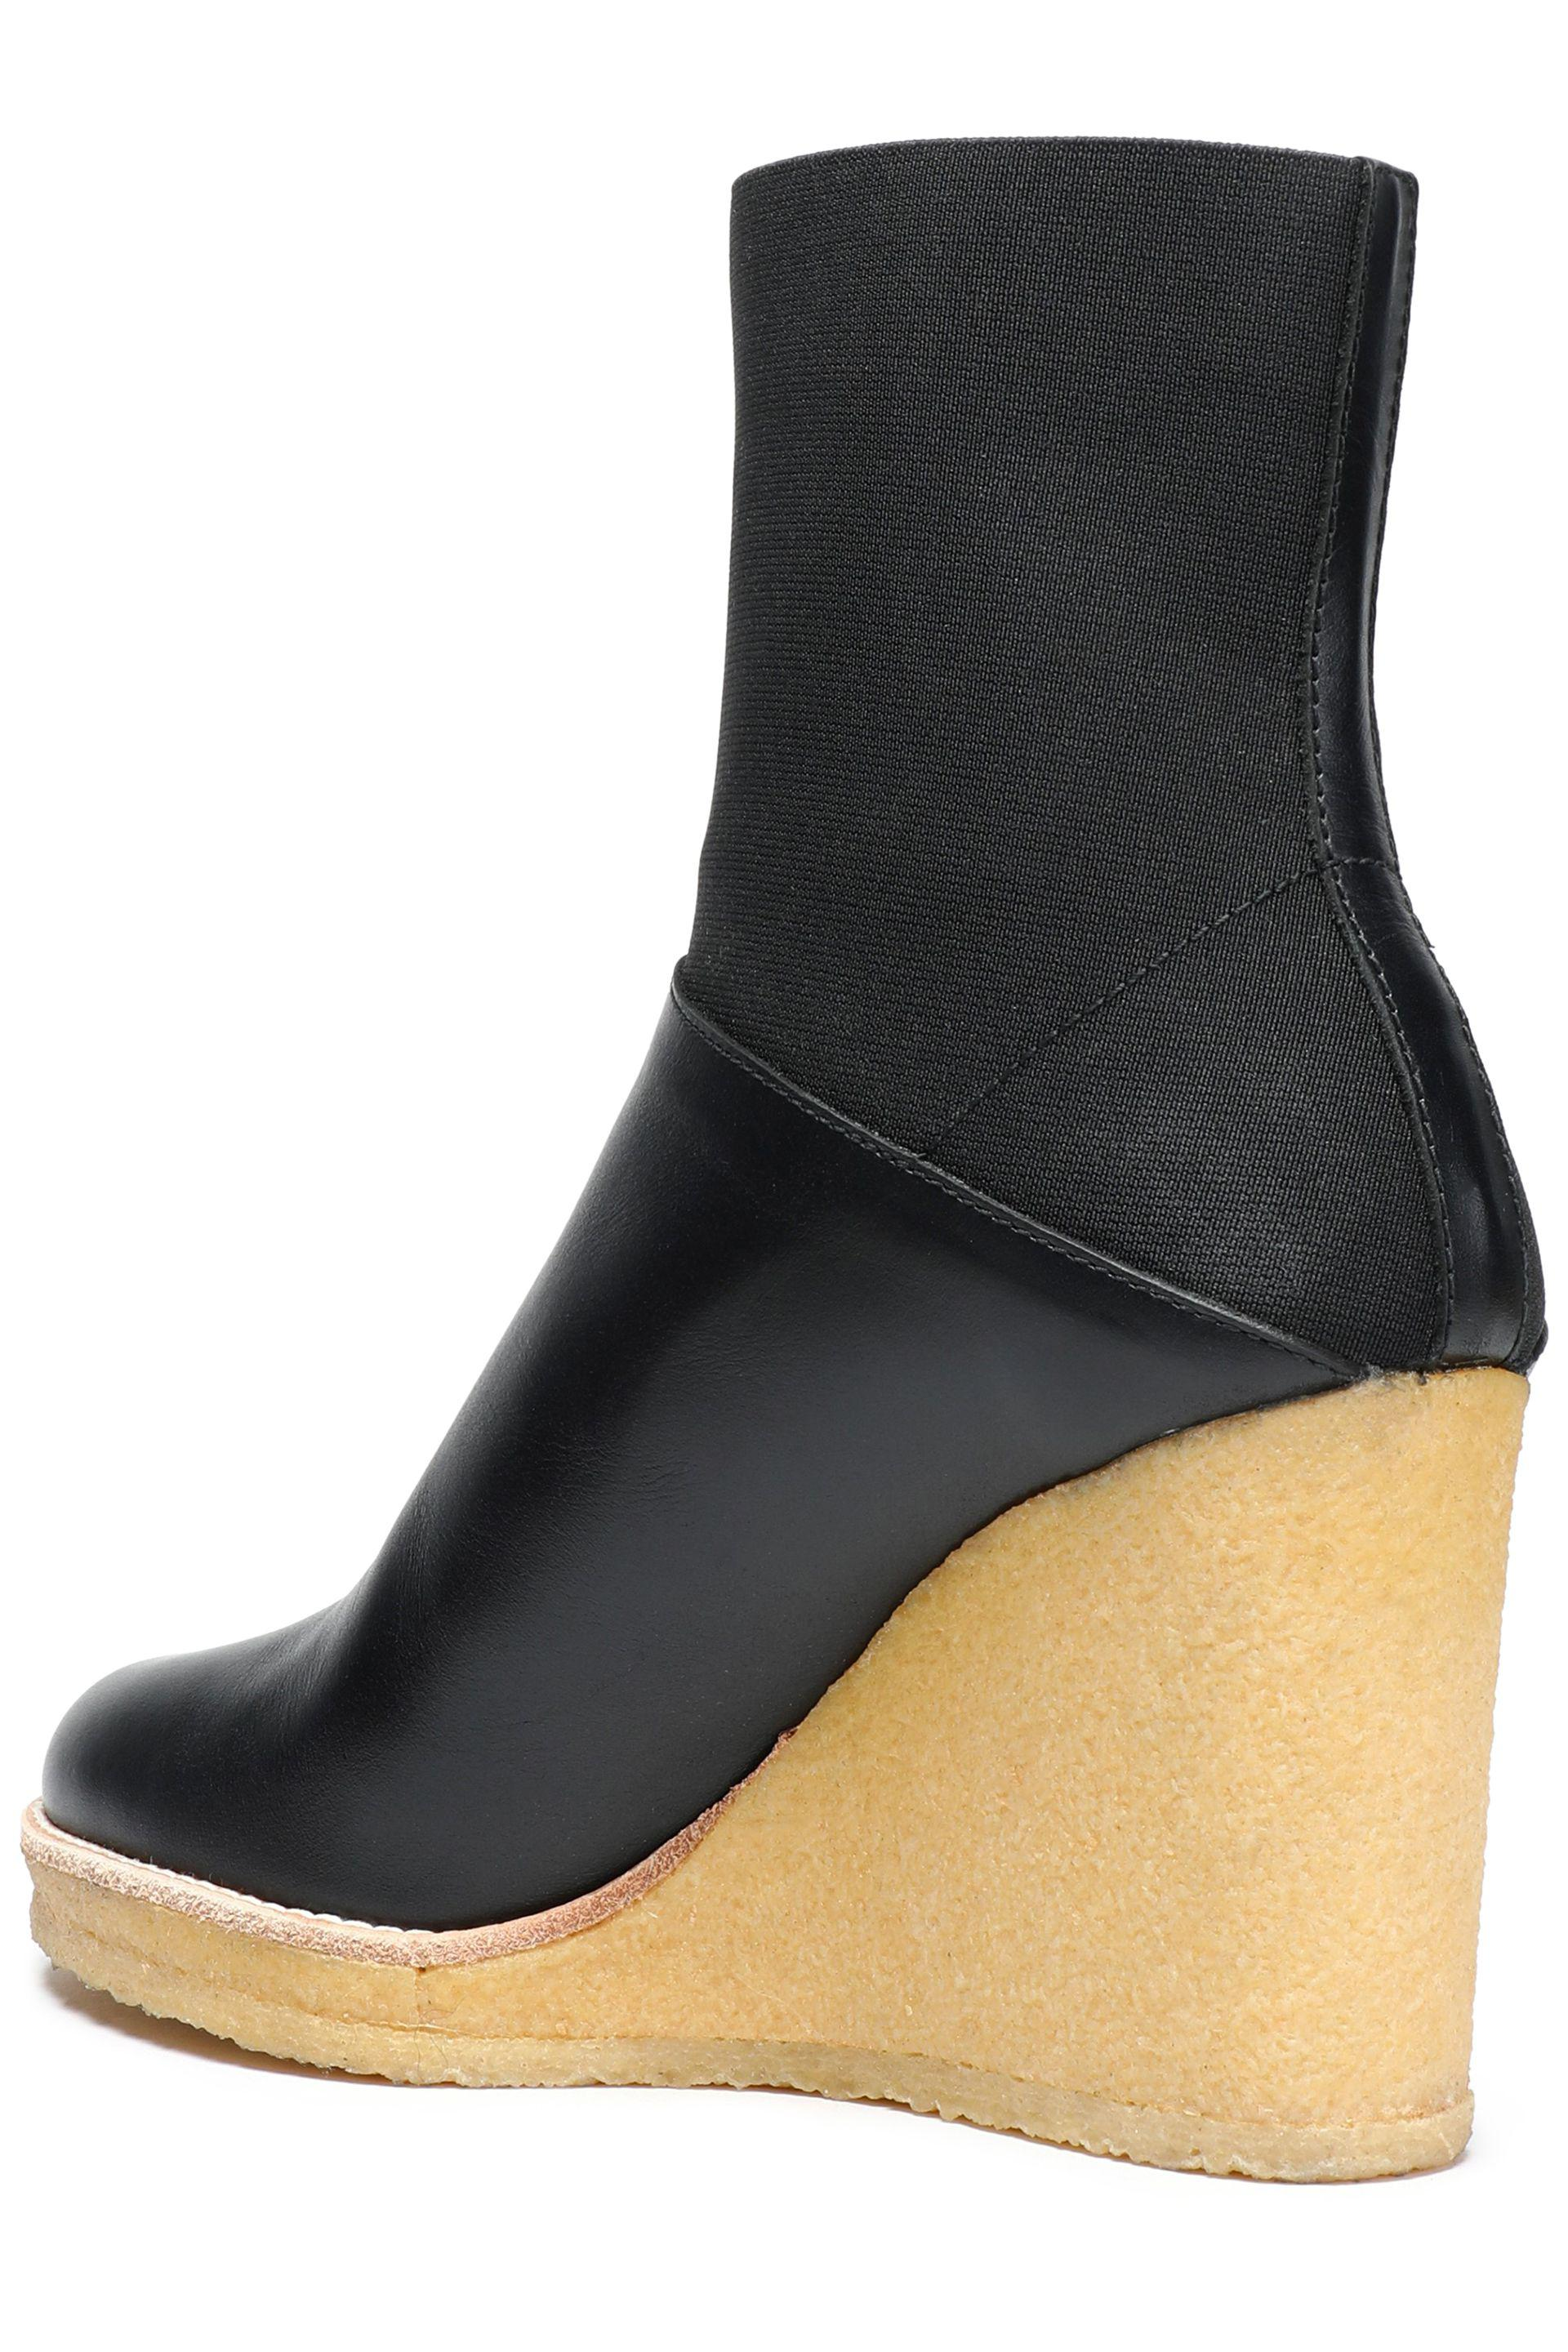 Castaner Paneled Leather And Stretch-knit Wedge Ankle Boots in Black